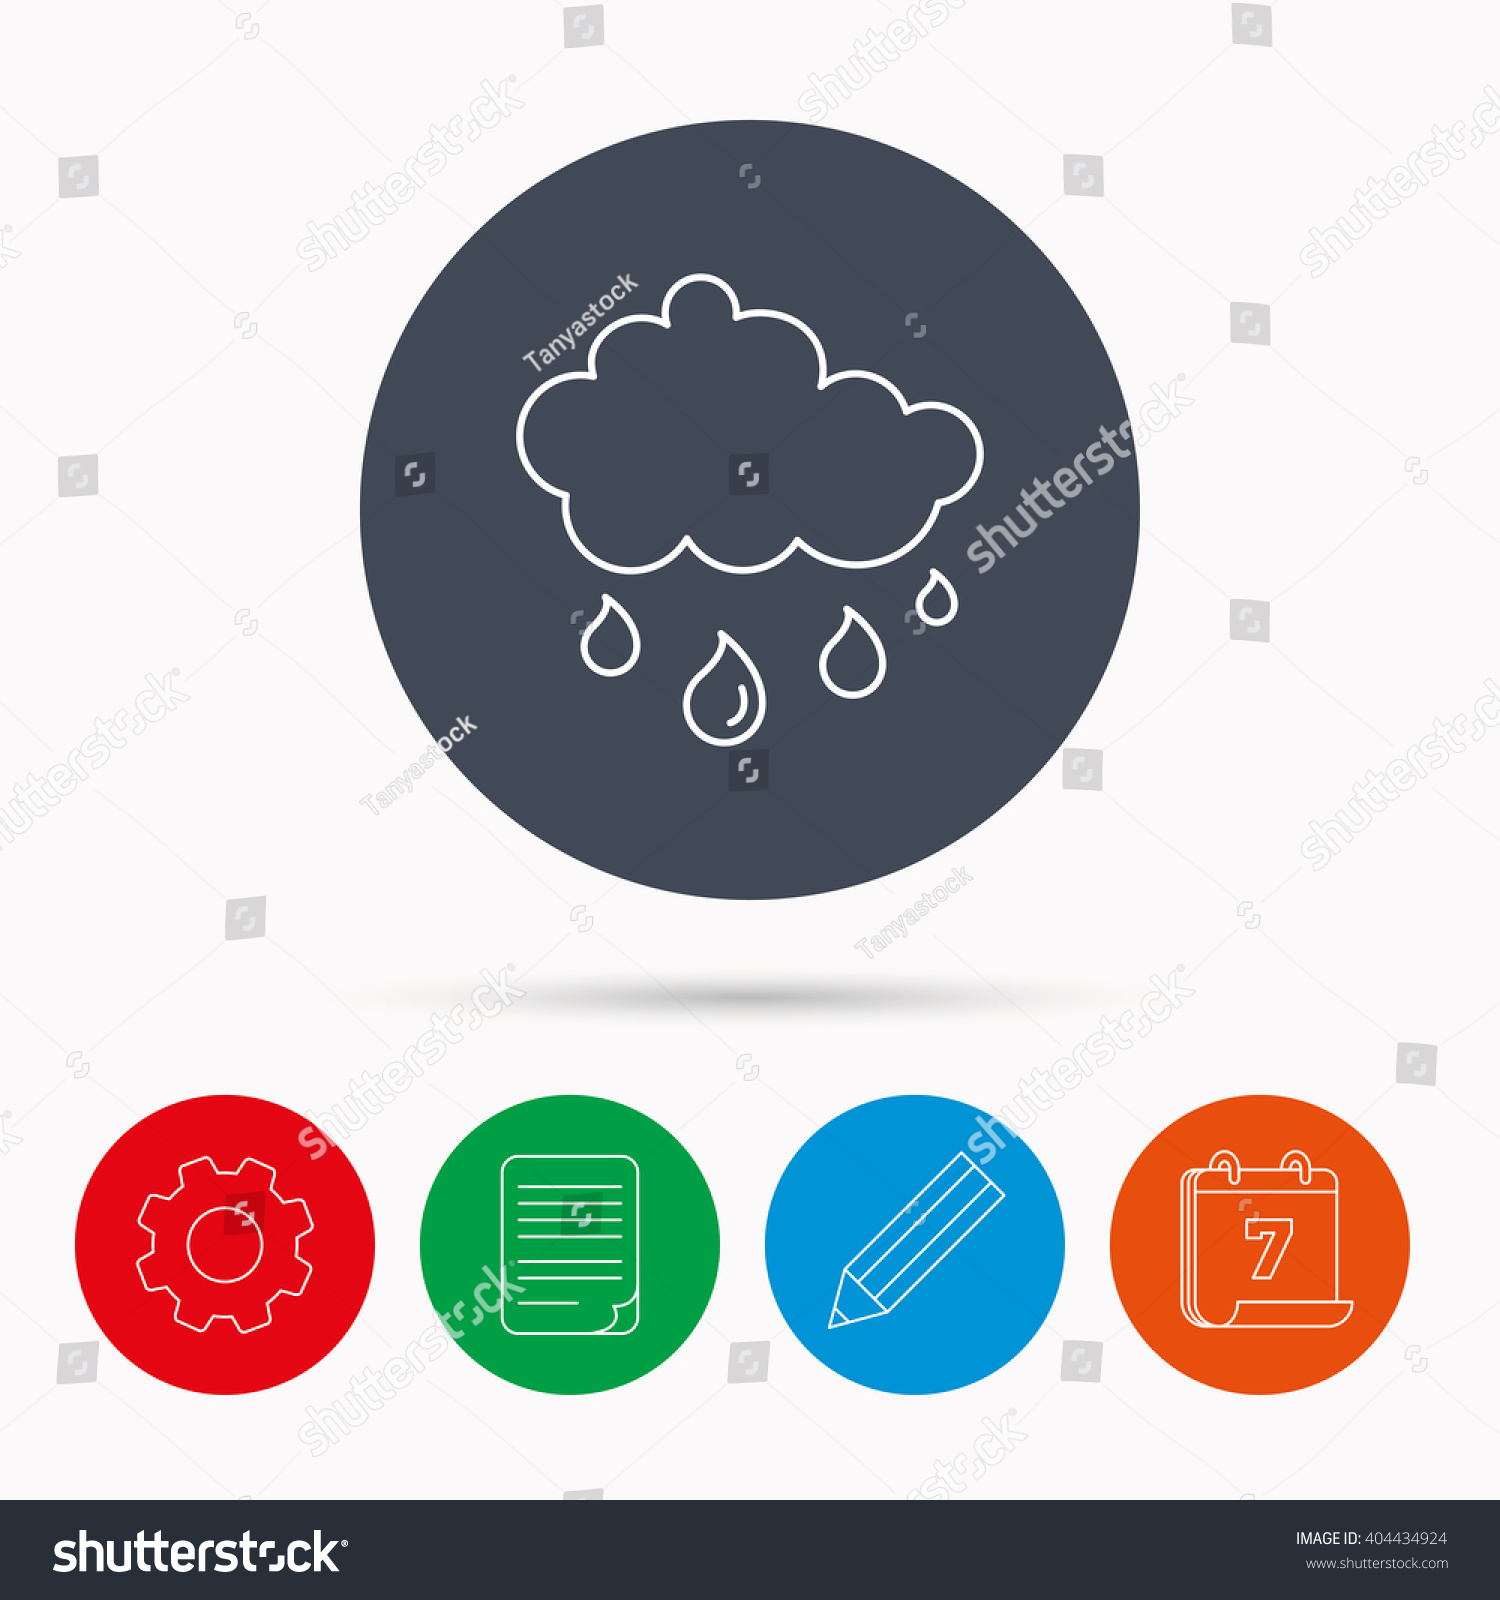 Rain icon Water drops and cloud sign Rainy overcast day symbol Calendar cogwheel document file and pencil icons